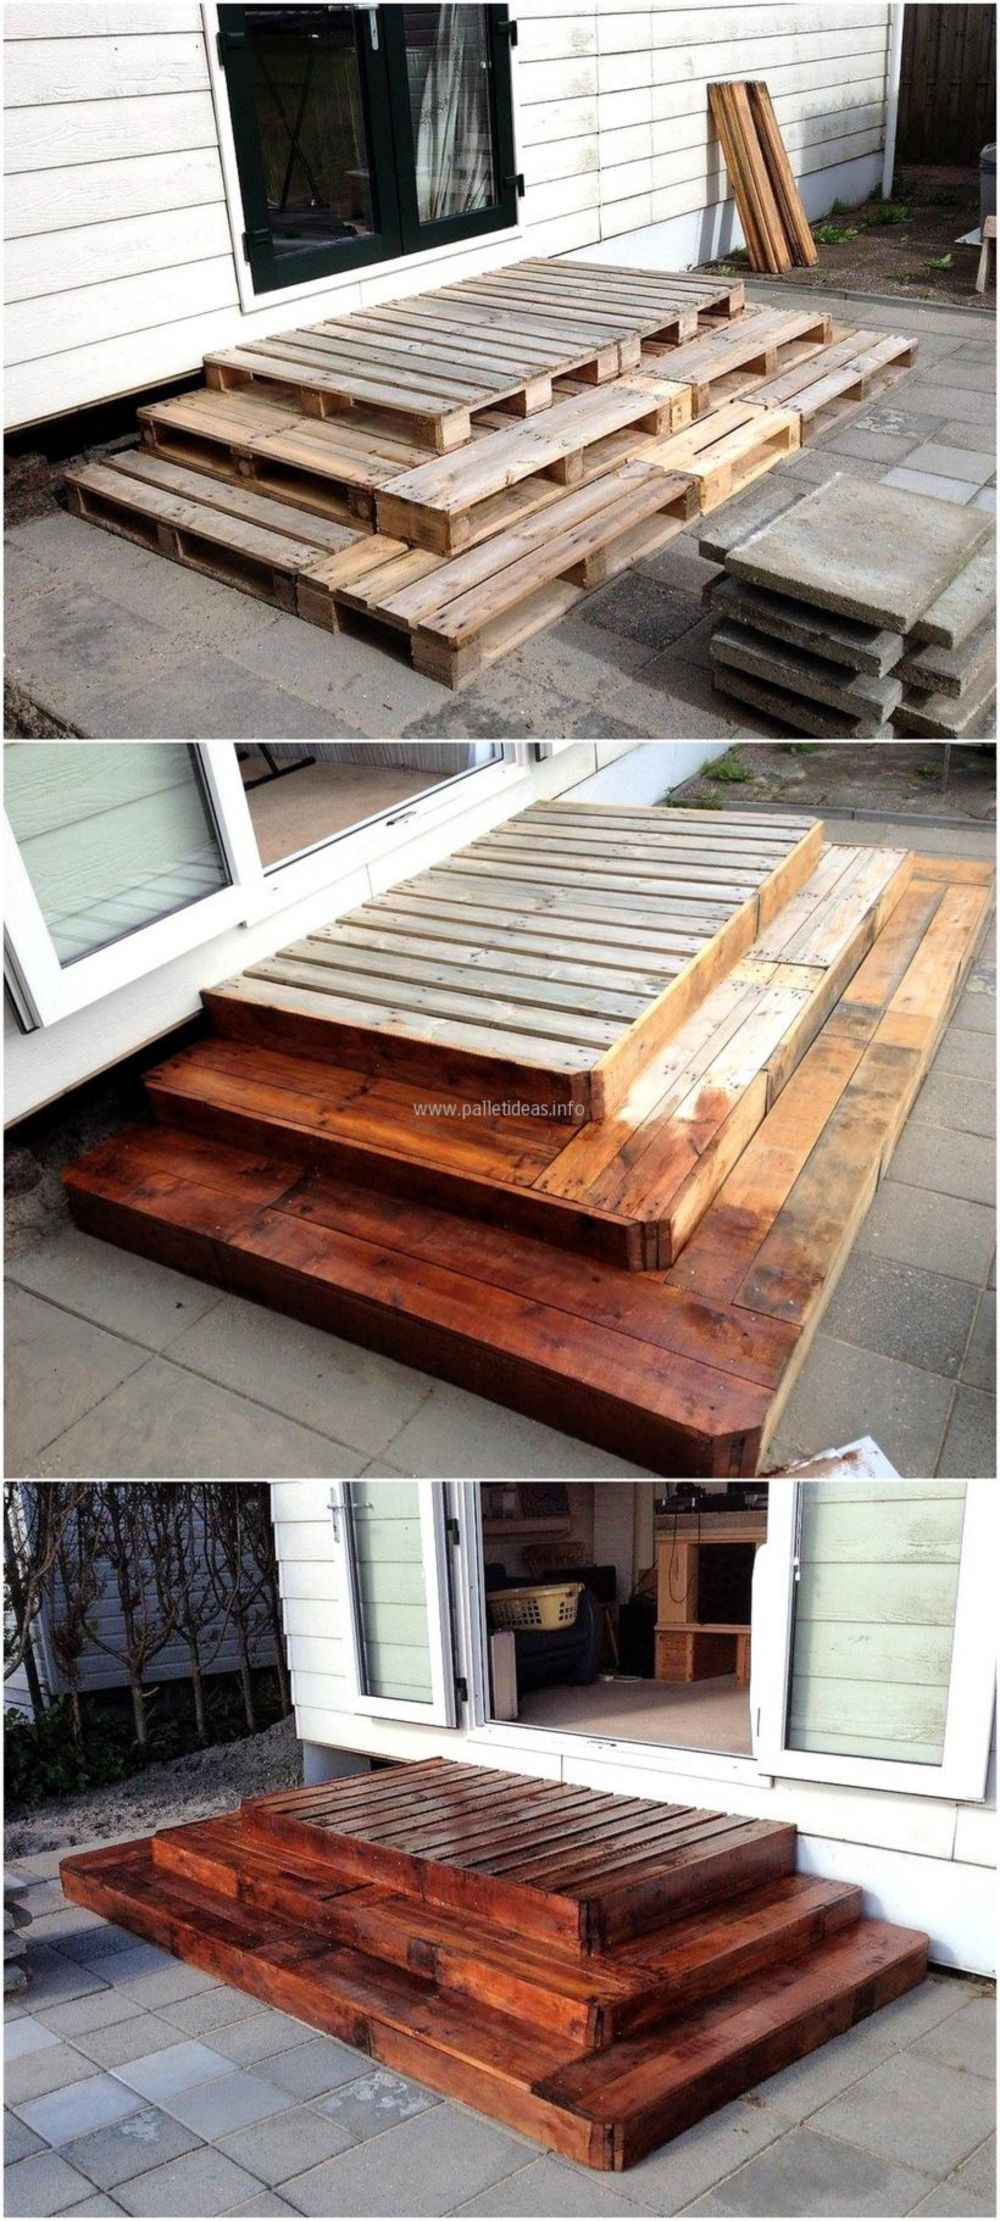 30 diy patio ideas on a budget | diy patio and patios - Patio Flooring Ideas Budget